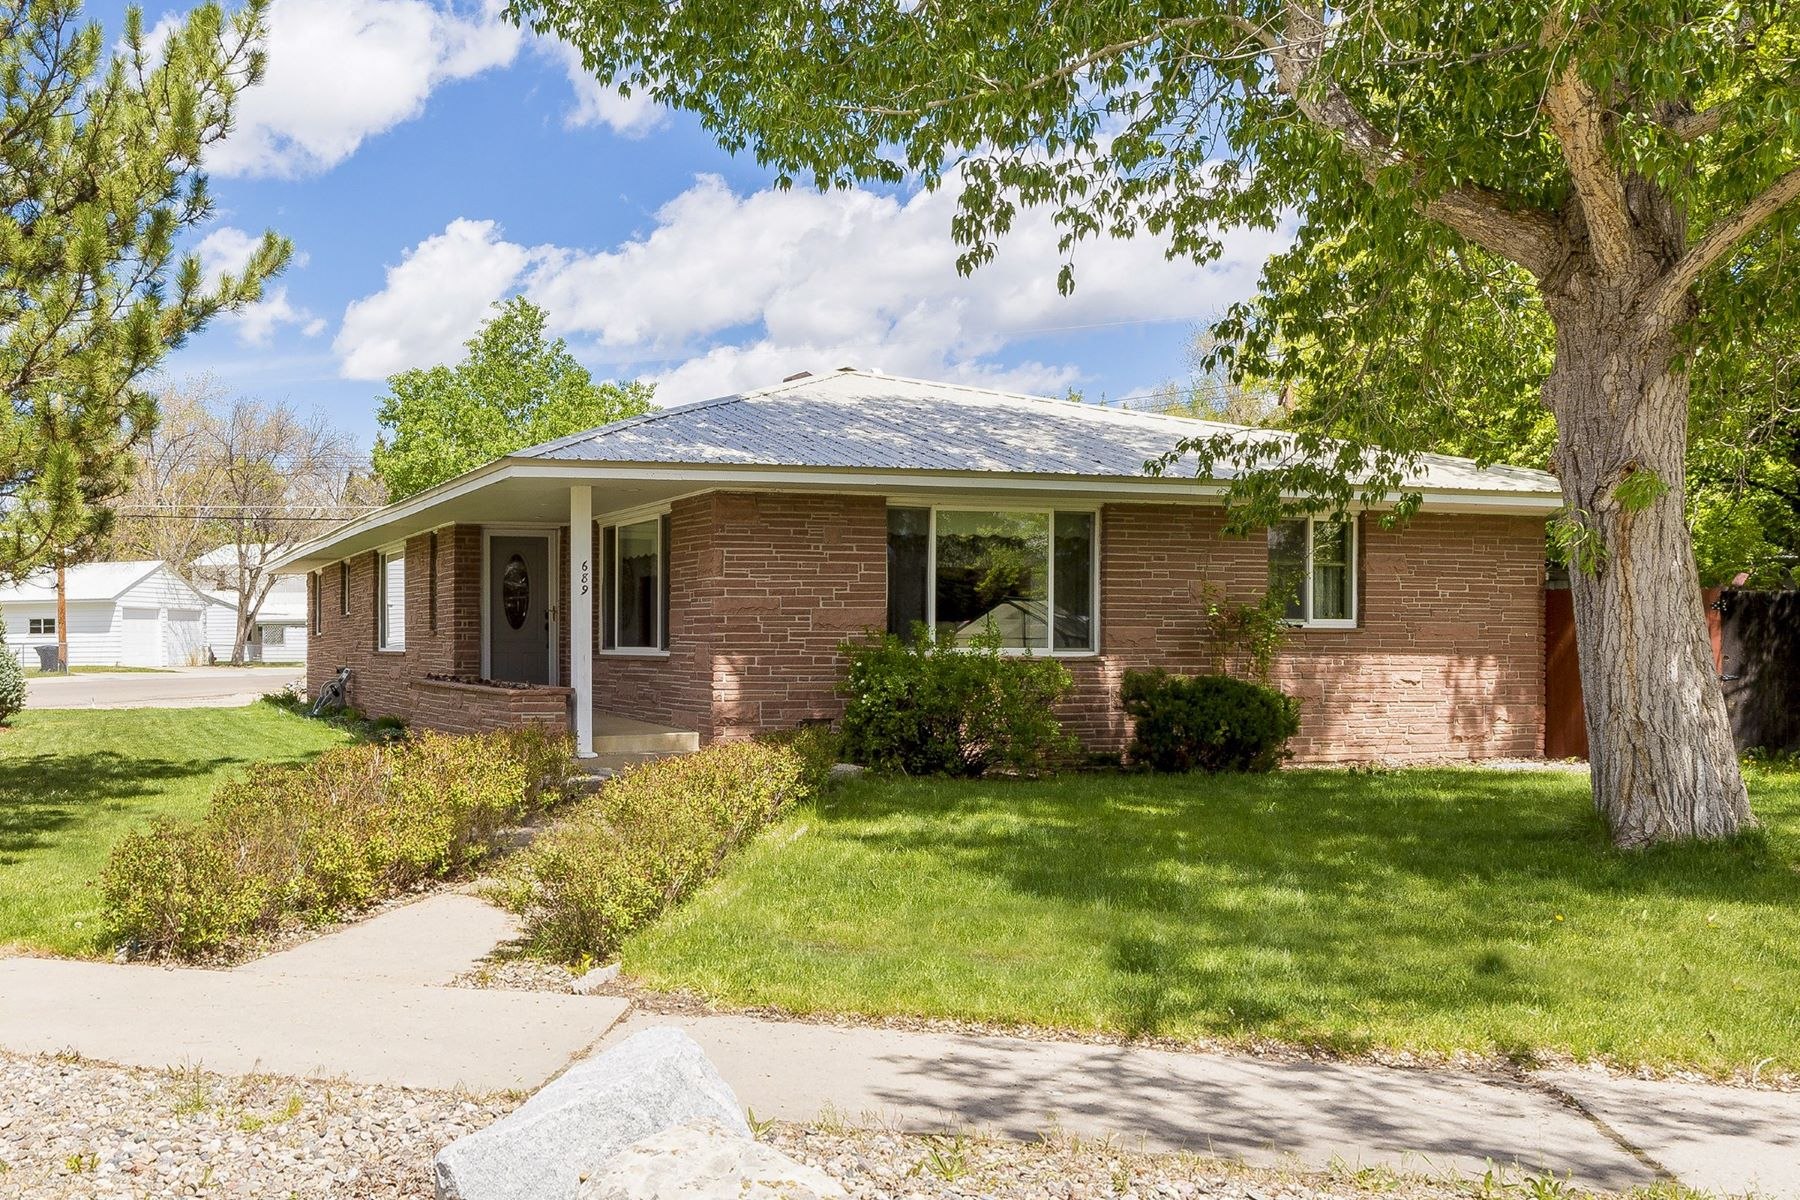 Single Family Home for Sale at Immaculate Classic Mid-Century Ranch Home 689 Pershing St., Craig, Colorado, 81625 United States